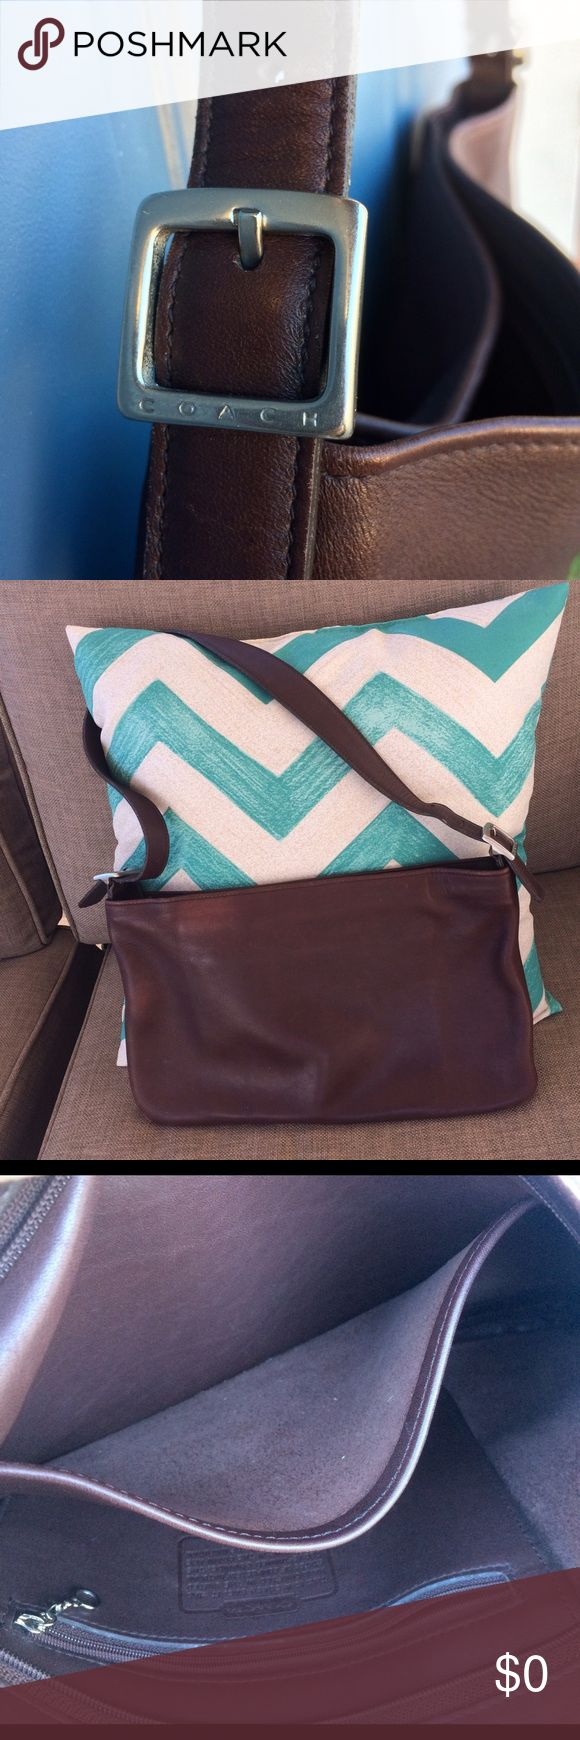 Authentic Coach Leather Slim Shoulder Bag Classic Coach leather bag medium to dark brown good to excellent condition. Inside looks brand new. Soft and subtle smooth leather shapes nicely to shoulder and arm😍 Nickel hardware which can be adjusted to shorten strap (shoulder drop). Amazing classic Coach piece for any wardrobe. Coach Bags Shoulder Bags